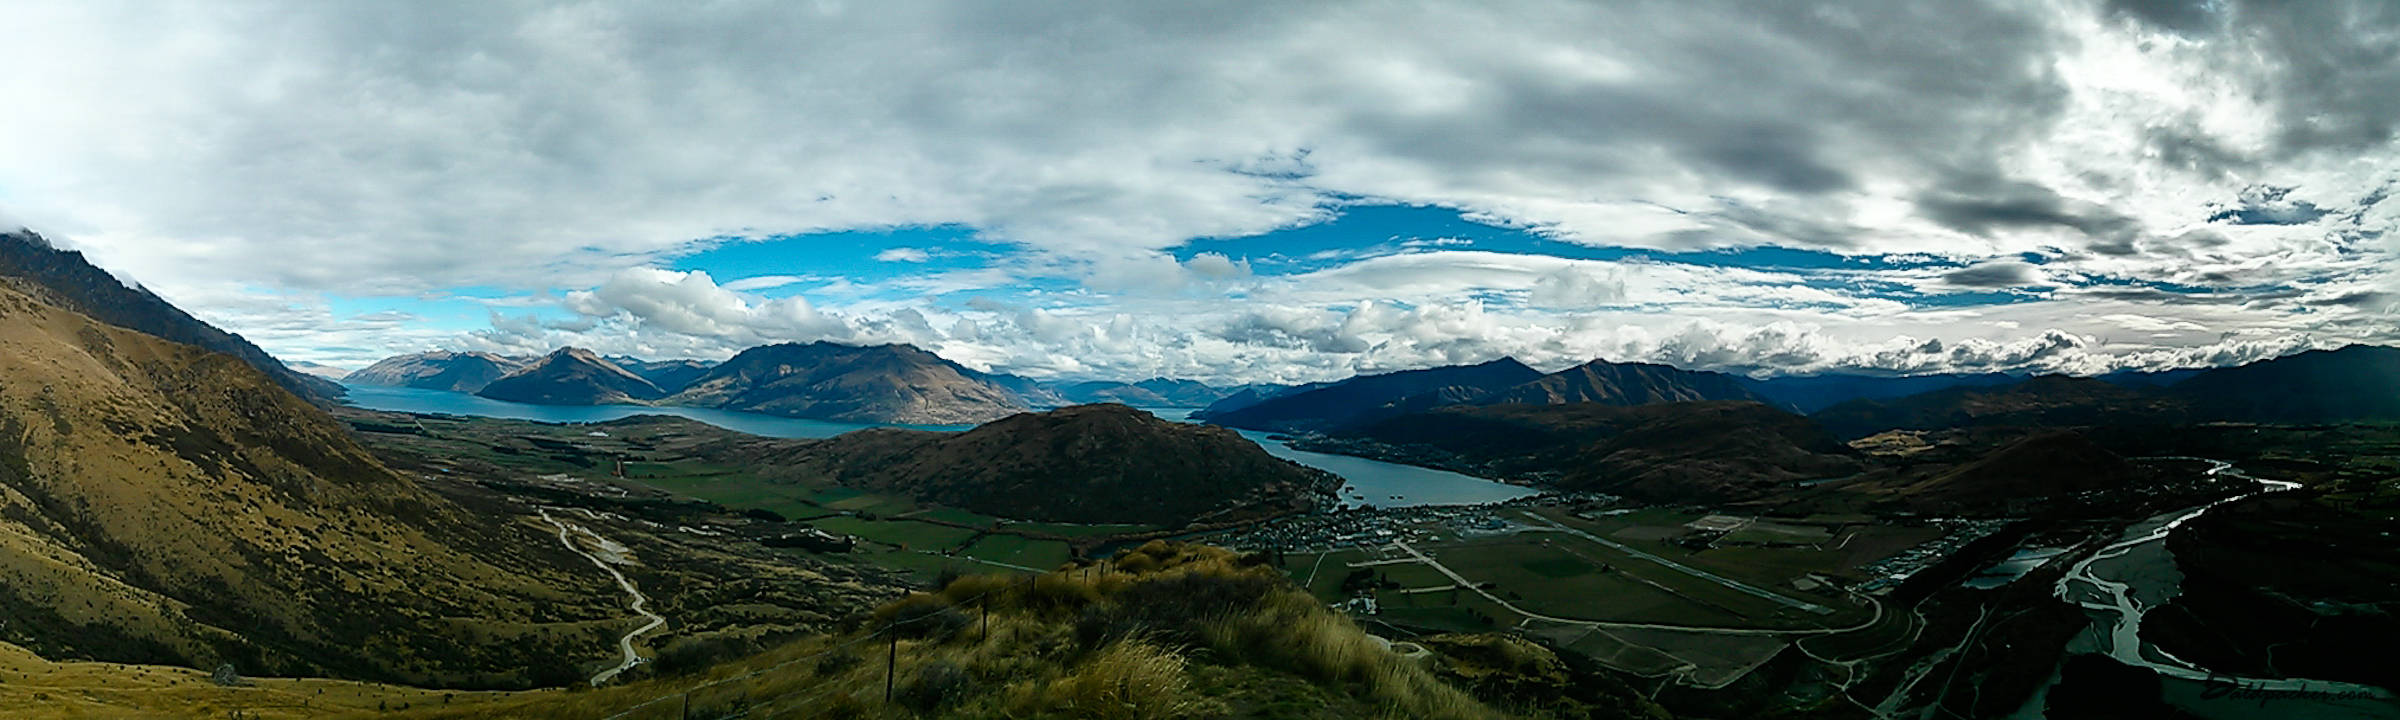 New Zealand: Queenstown